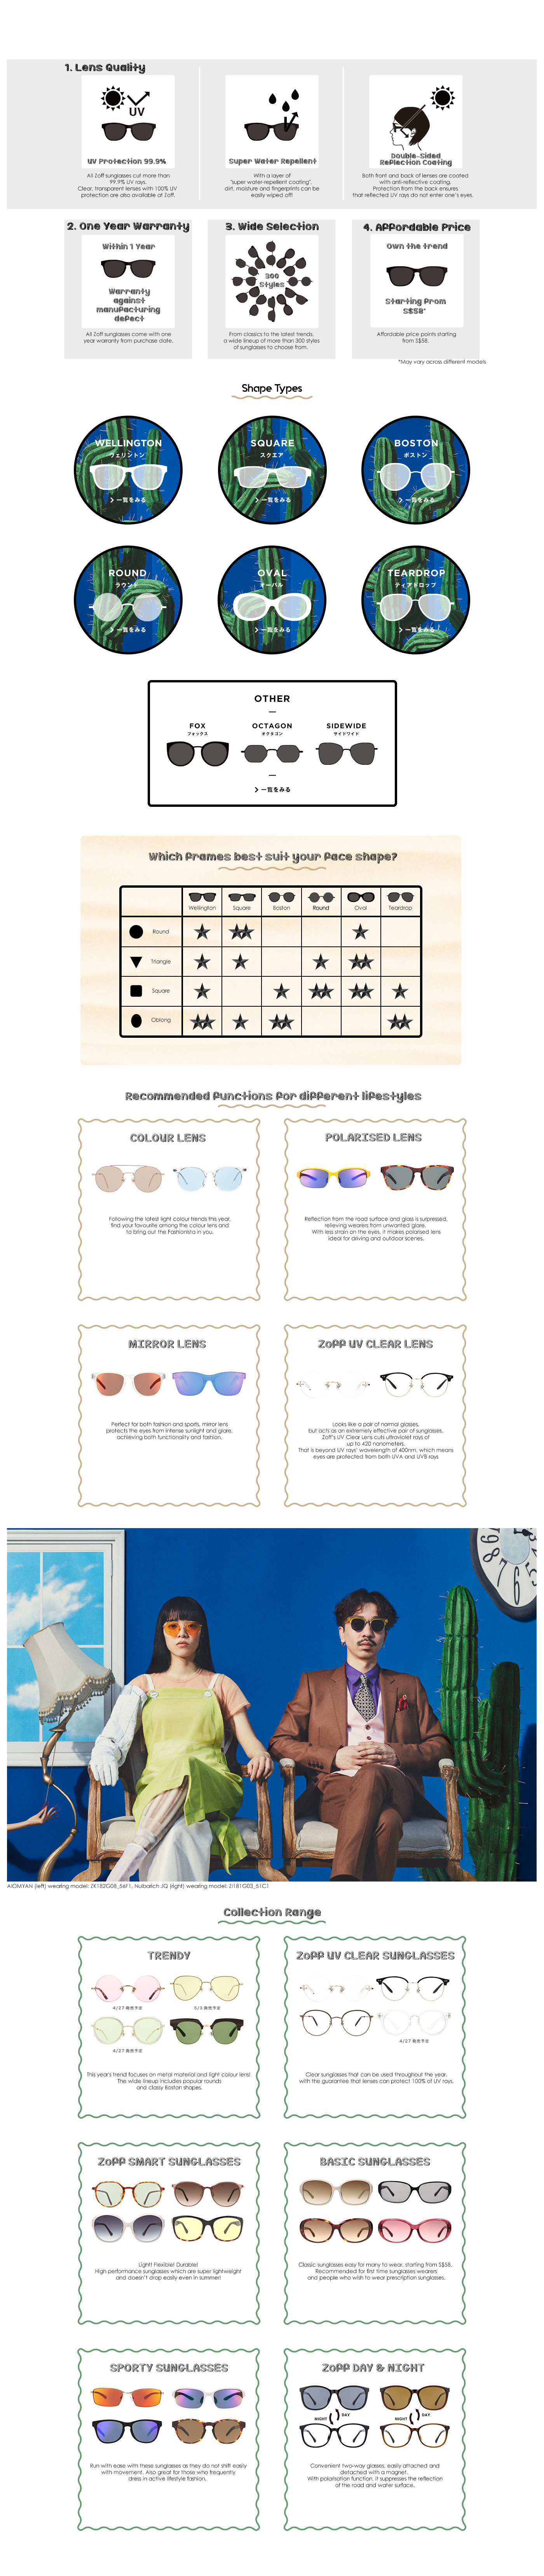 Zoff Collection - Sunglasses Summer 2018